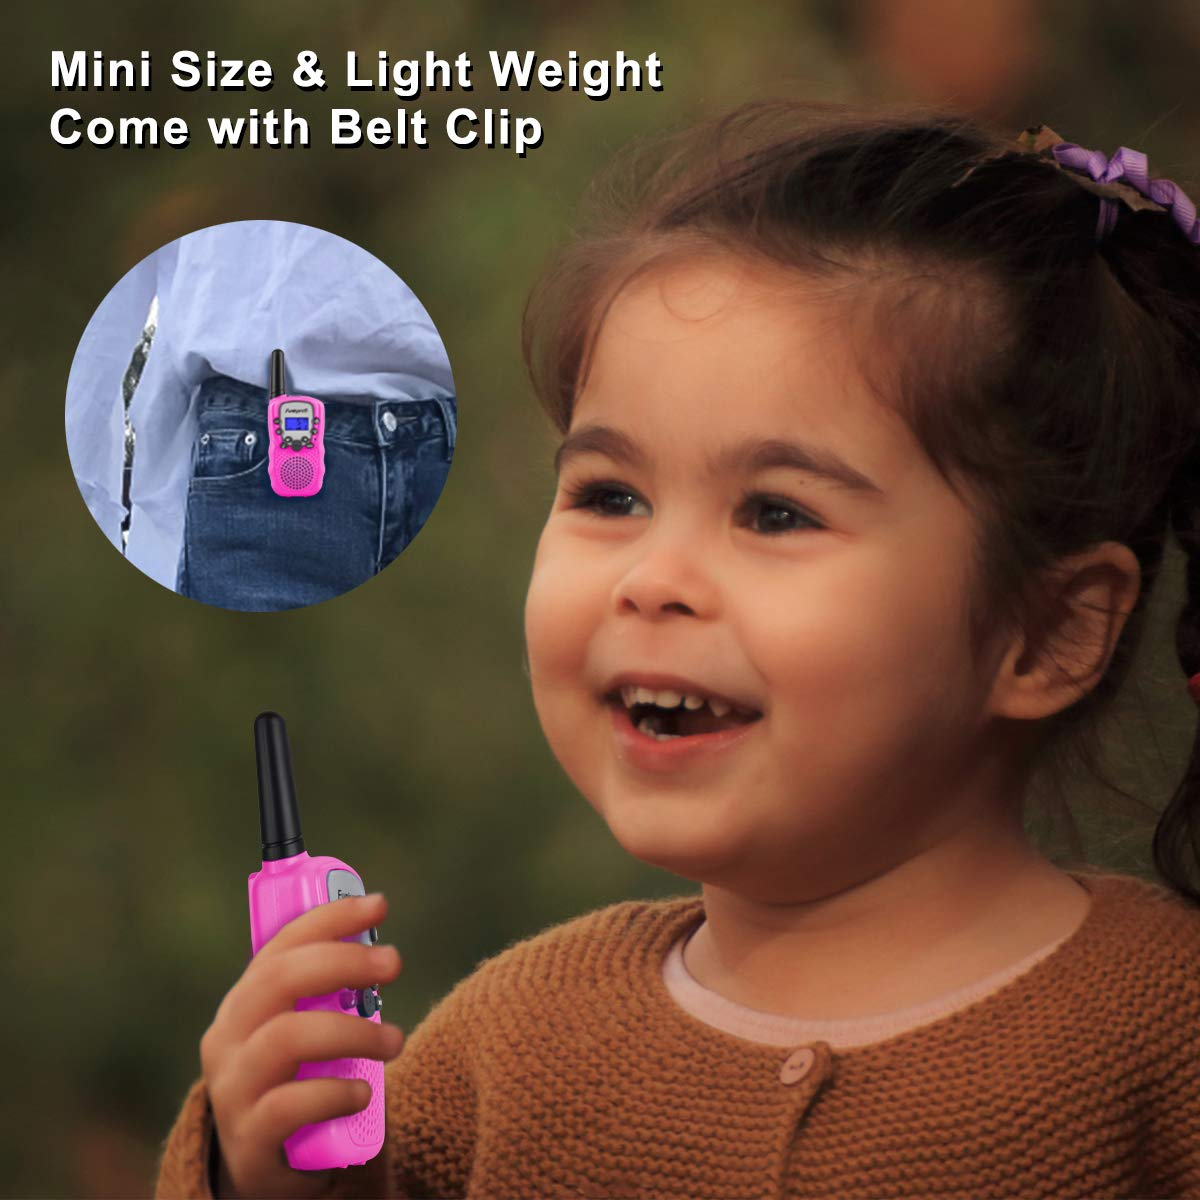 Funkprofi Walkie Talkies for Kids, VOX Hands Free Noise Canceling Kids Walkie Talkies with Belt Clip and LCD Screen, 22 Channels Long Range Two Way Radios for Camping Hiking Family Activities by Funkprofi (Image #5)